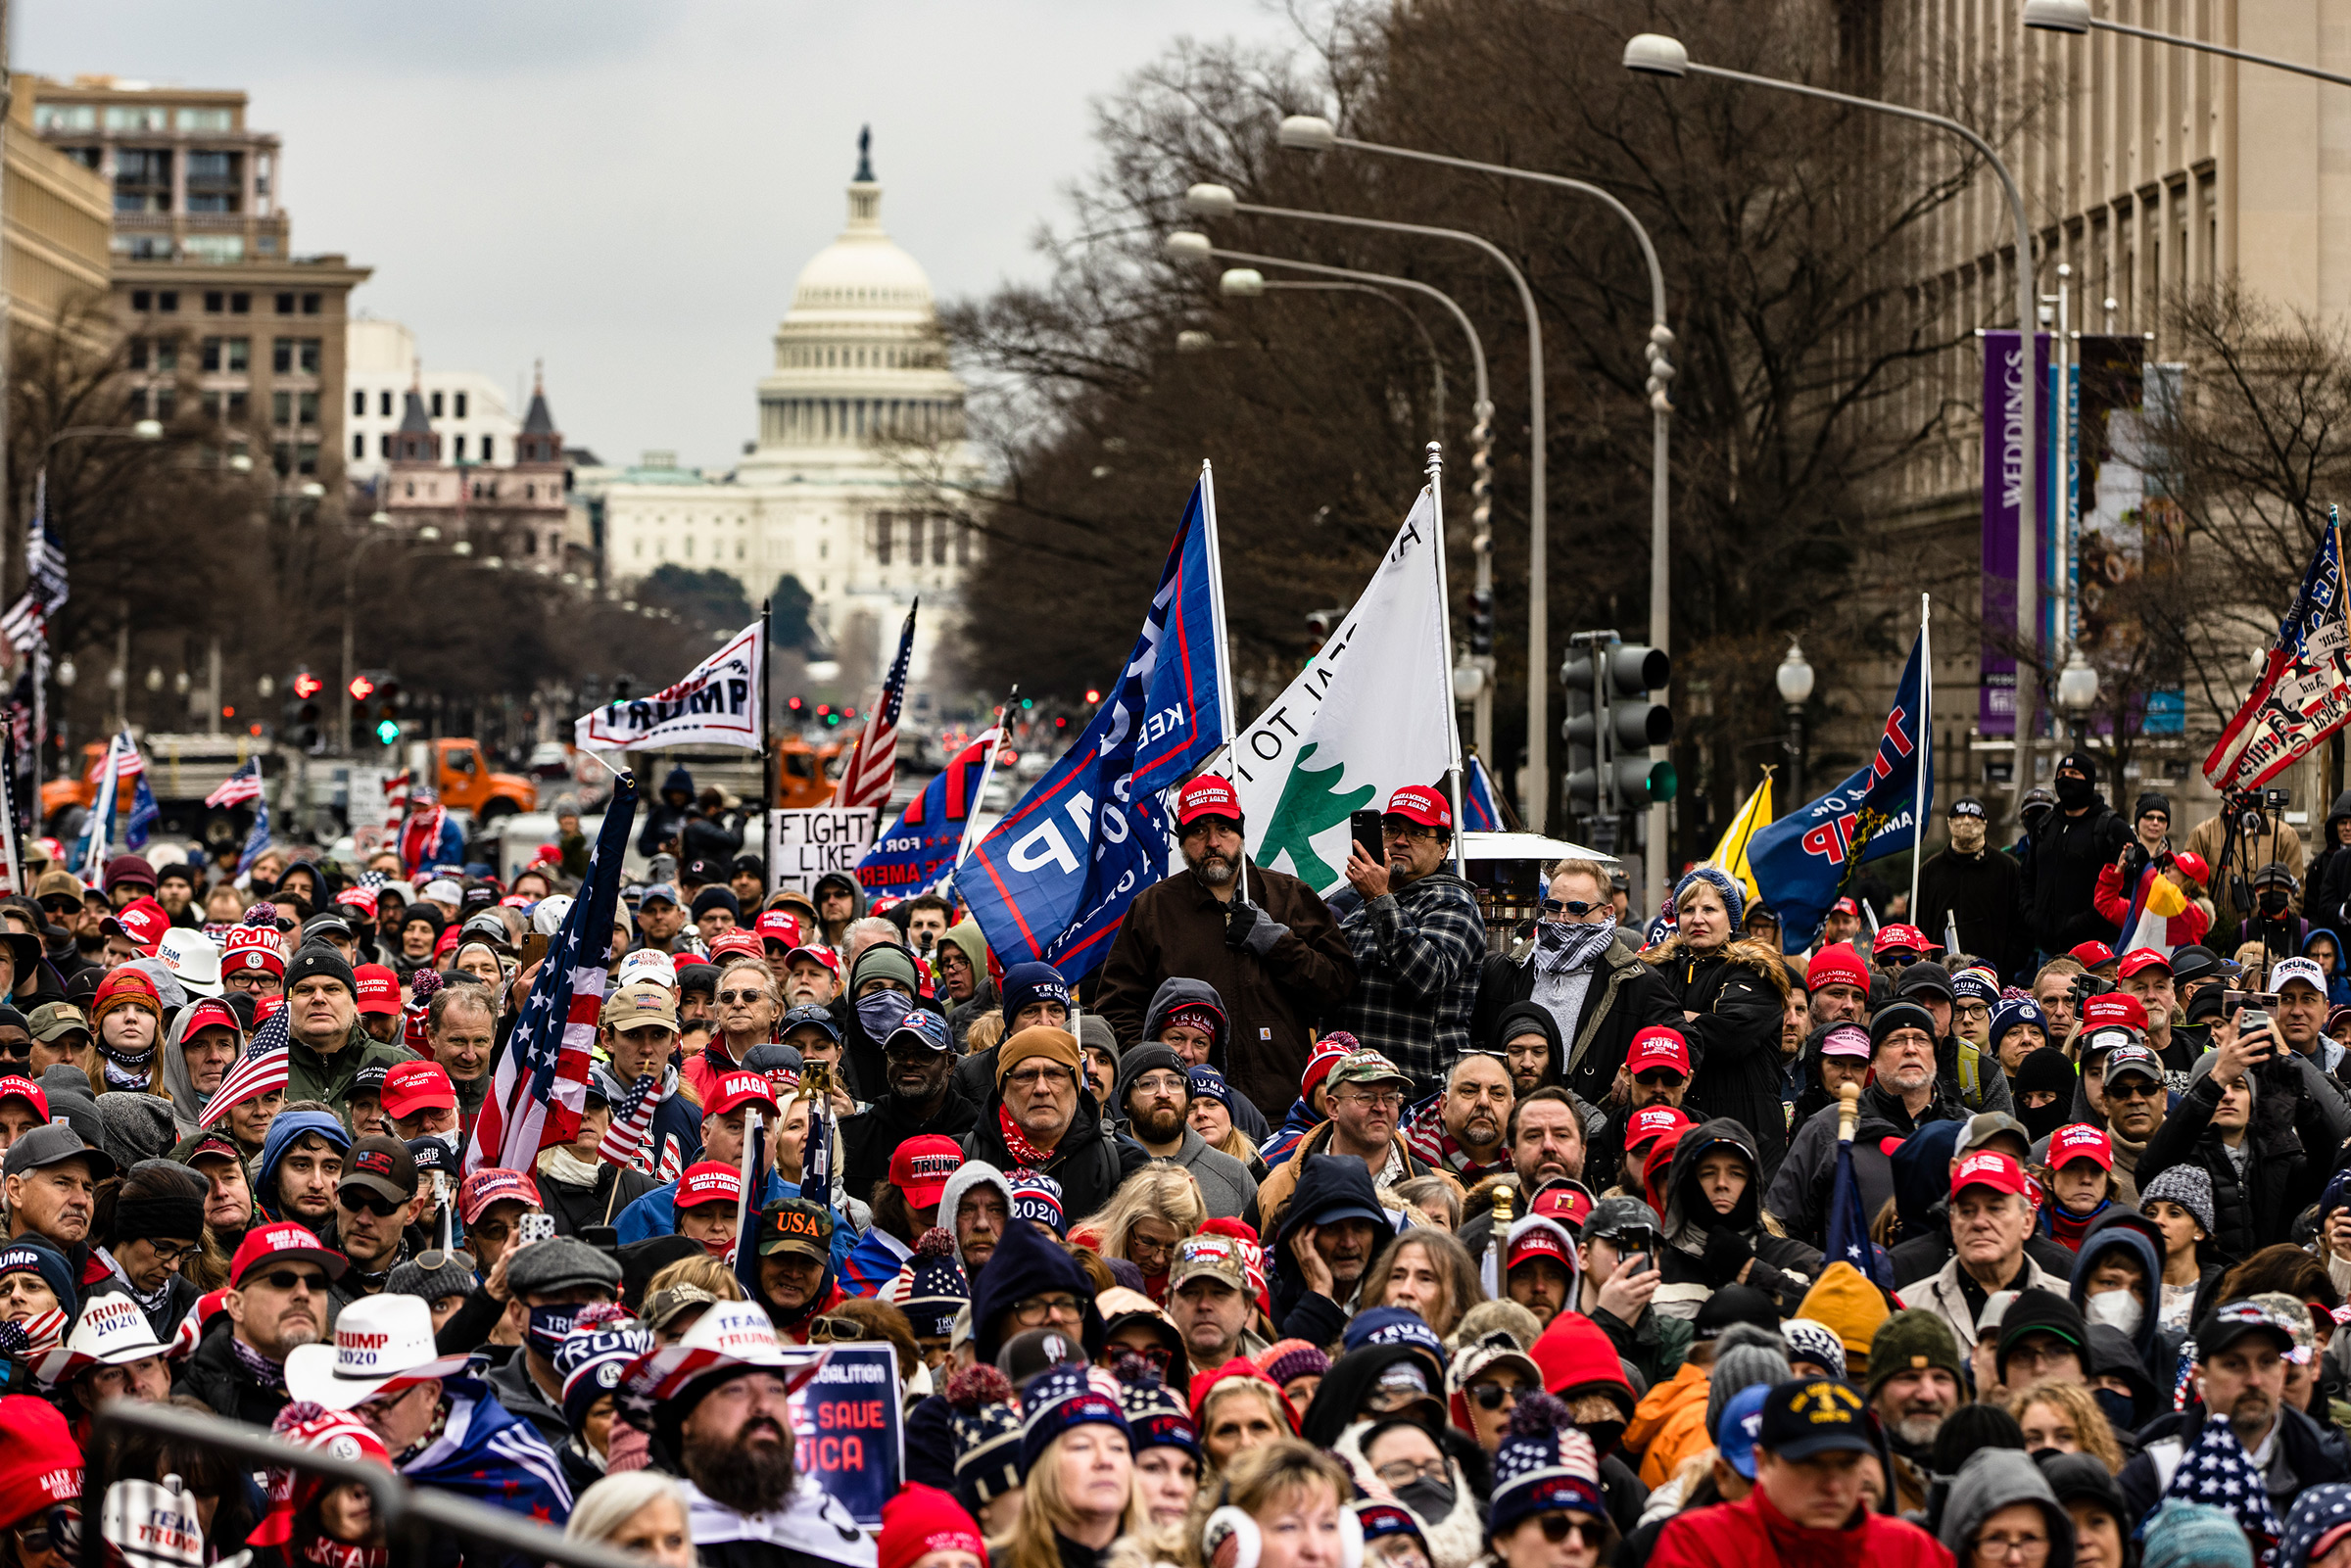 Supporters of President Donald Trump gather in Freedom Plaza for a rally in Washington, DC., on January 5, 2021. Today's rally kicks off two days of pro-Trump events fueled by the President's continued claims of election fraud.